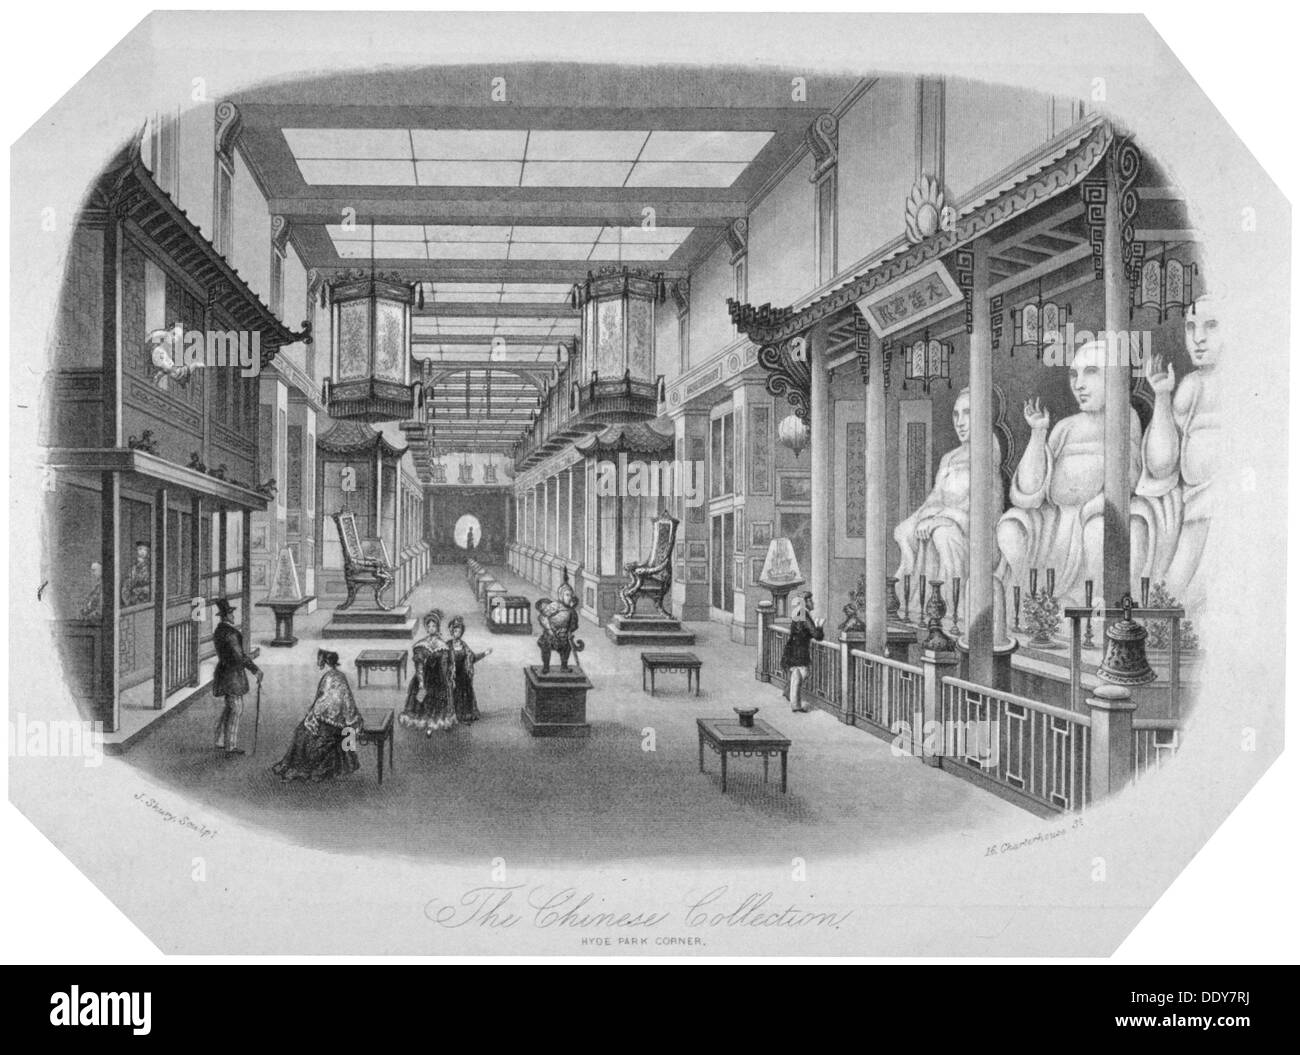 'The Chinese collection, Hyde Park Corner, Westminster, London, c1841.                               Artist: J Shury - Stock Image